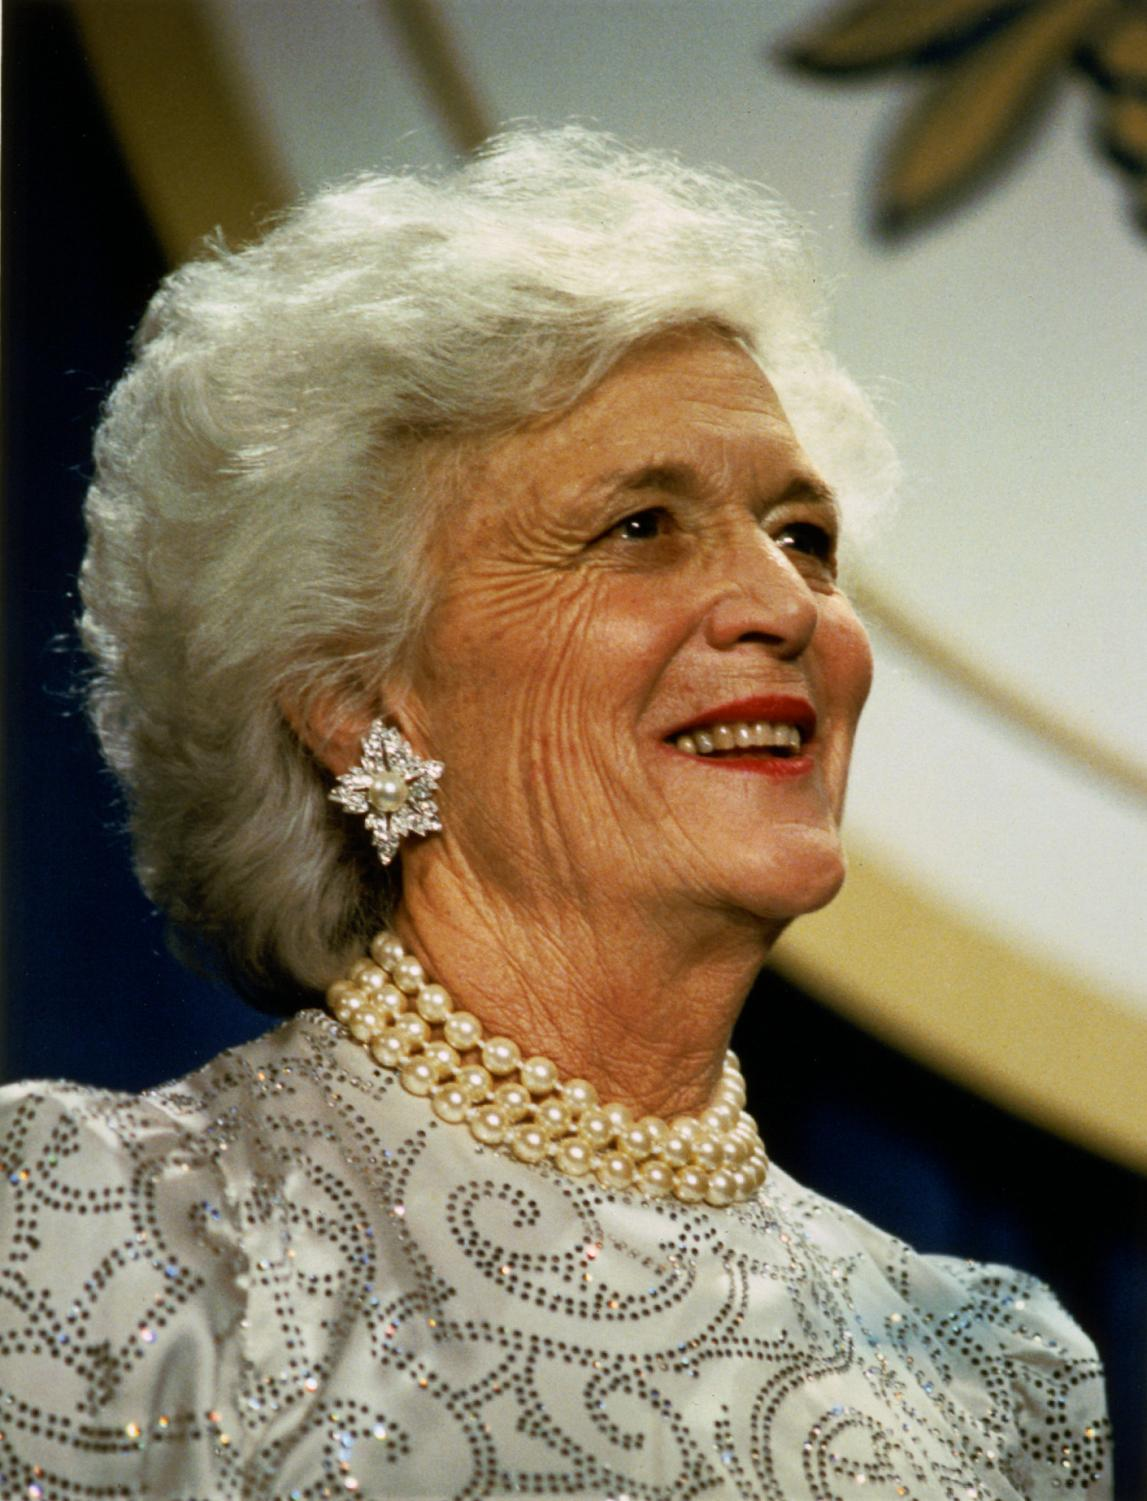 "Smiling into the distance with her signature pearls visible, Barbara Bush is seen as ""everyone's grandmother."" Mrs. Bush passed away on Tuesday, April 17."